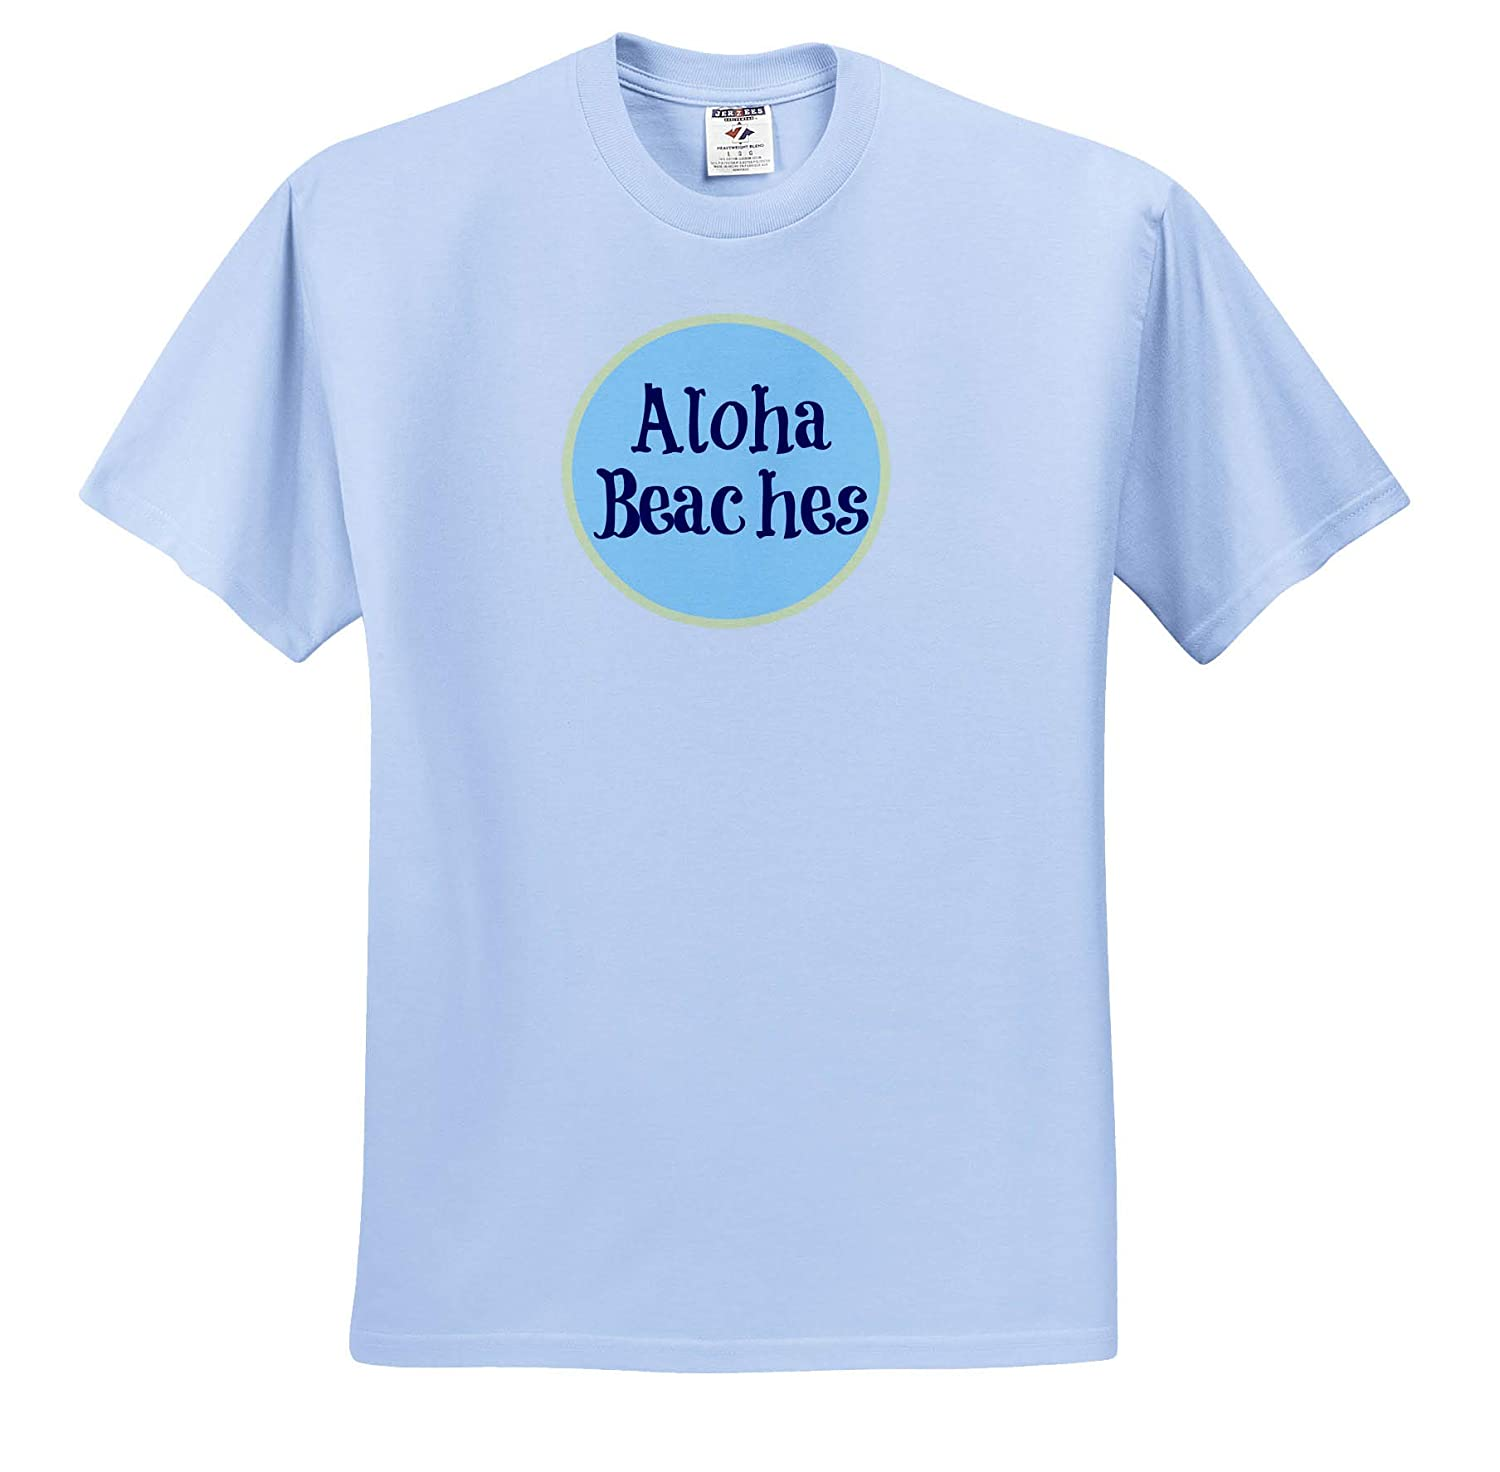 ts/_312652 Image of Aloha Beaches 3dRose Carrie Merchant Quote Adult T-Shirt XL